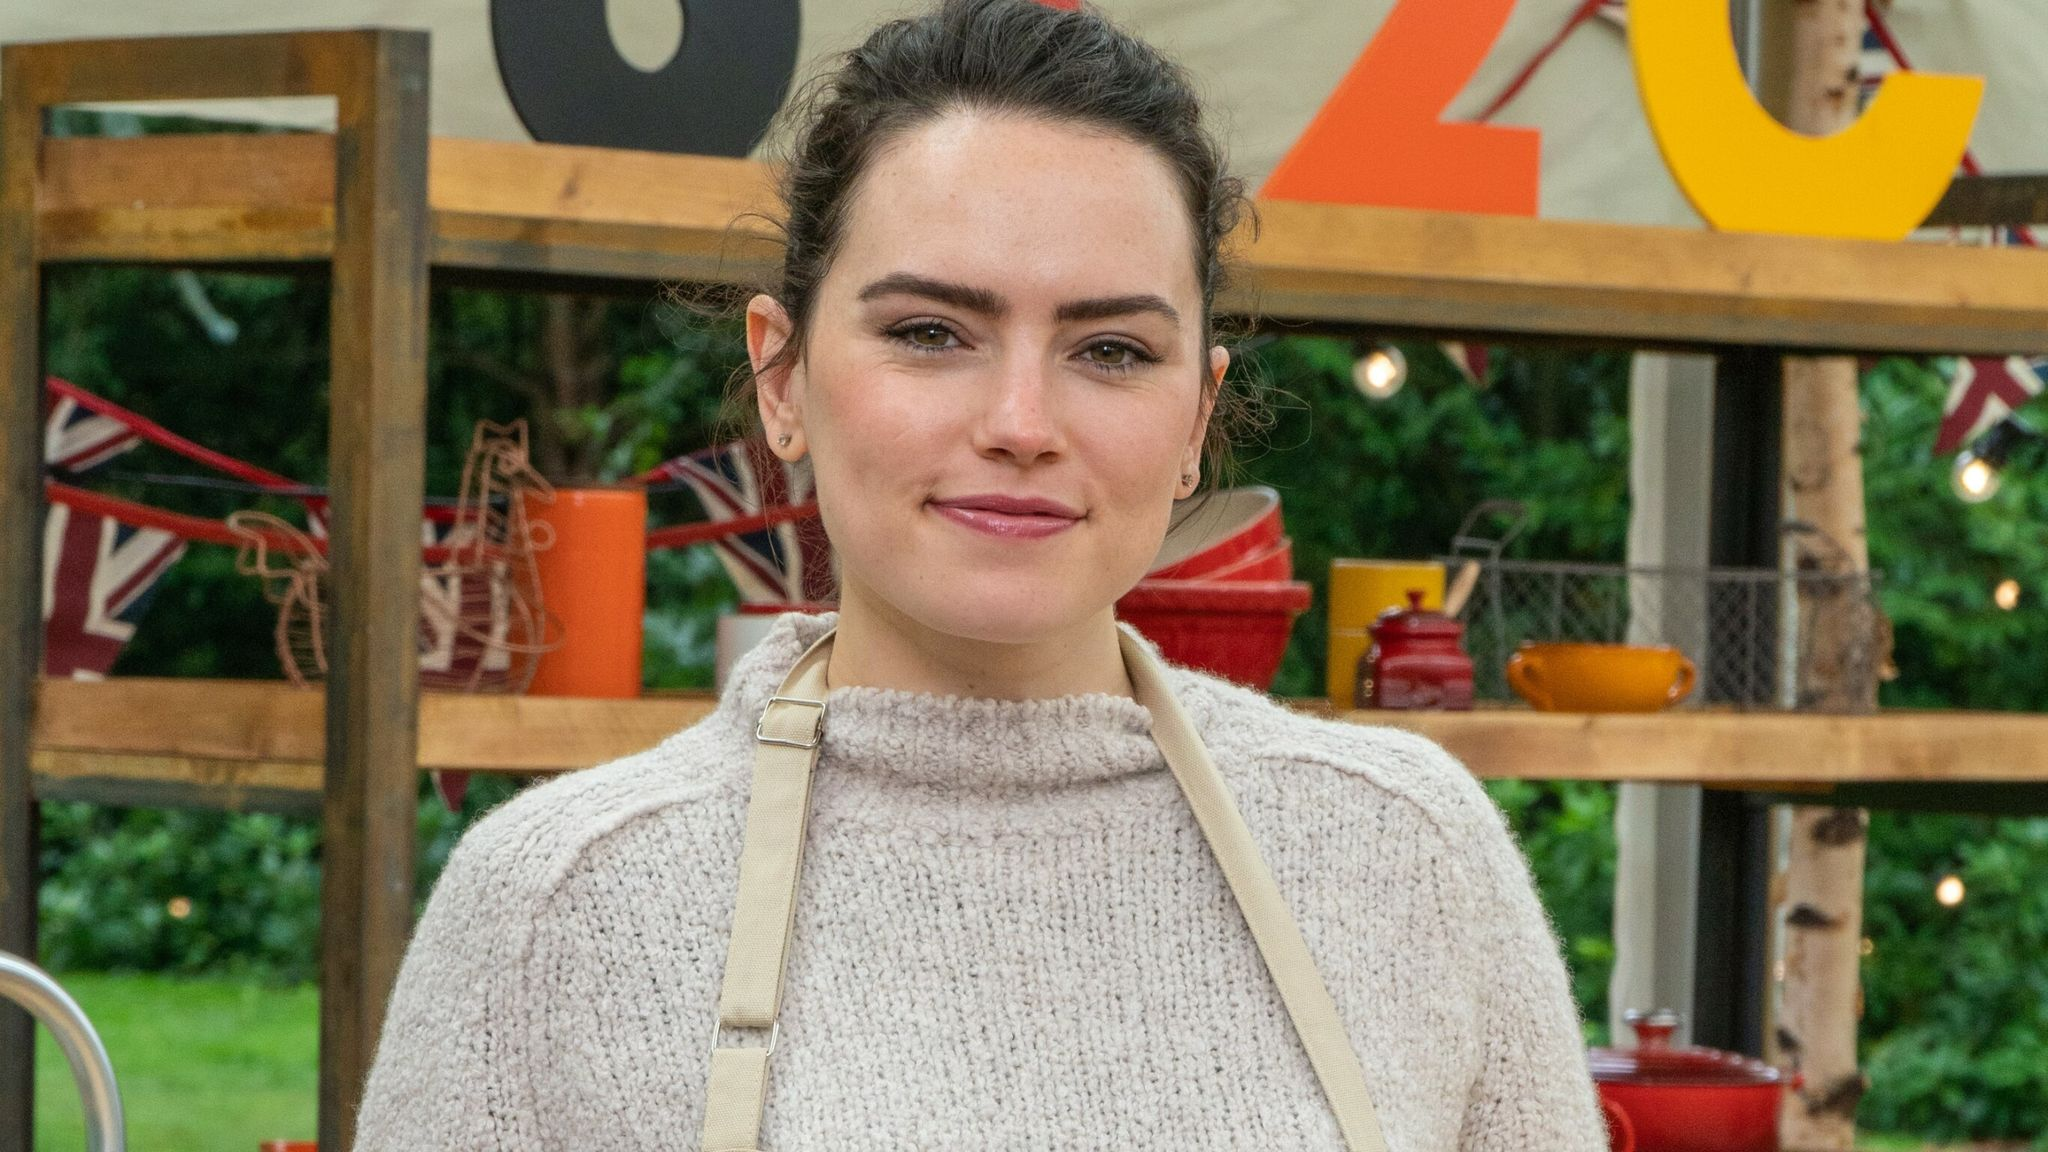 Daisy Ridley is taking part in The Great Celebrity Bake Off For Stand Up To Cancer. Pic: Channel 4